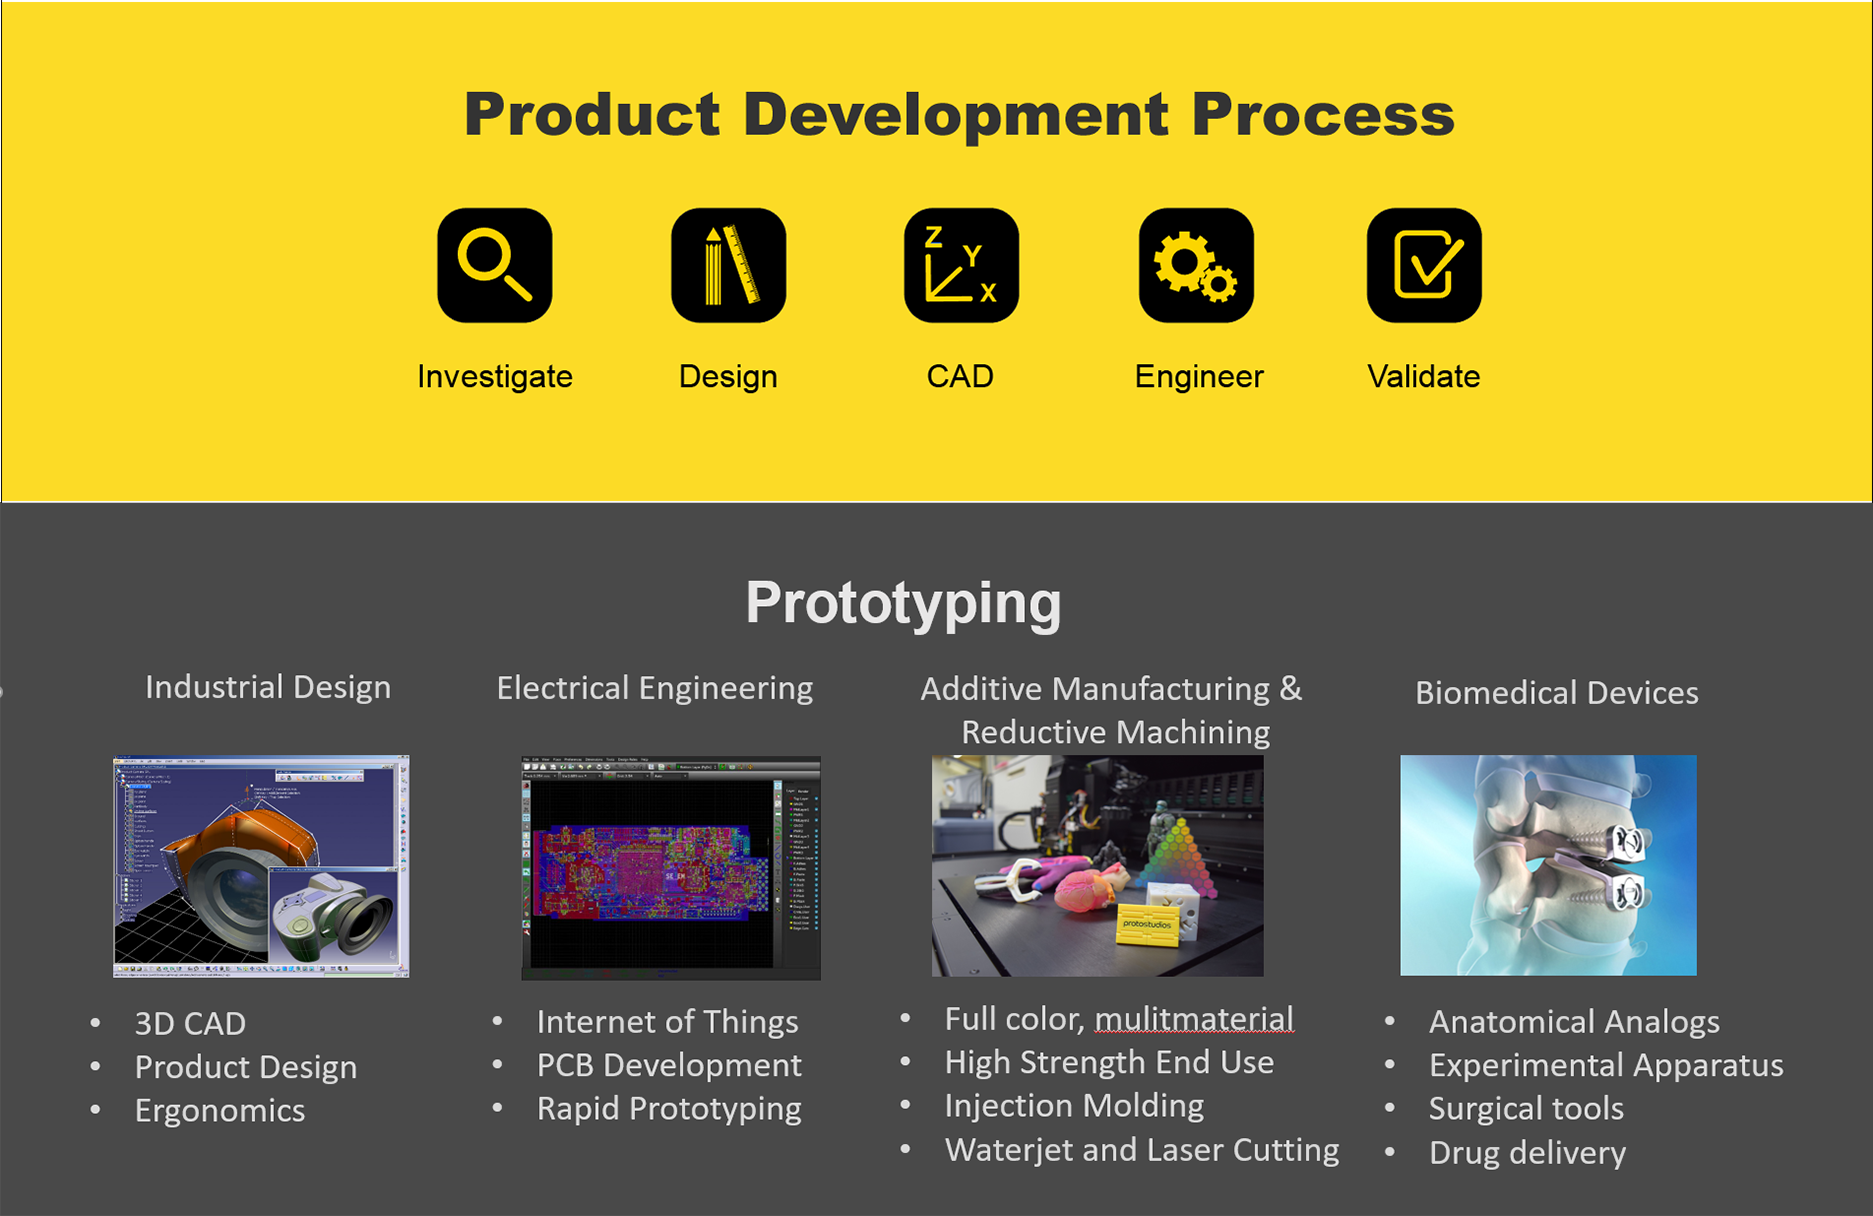 Product Development Process, Investigate, Design, CAD, Engineer and Validate. Prototyping for Industrial Design, Electrical Engineering, Additive Manufacturing and Reductive Machining and Biomedical Devices.